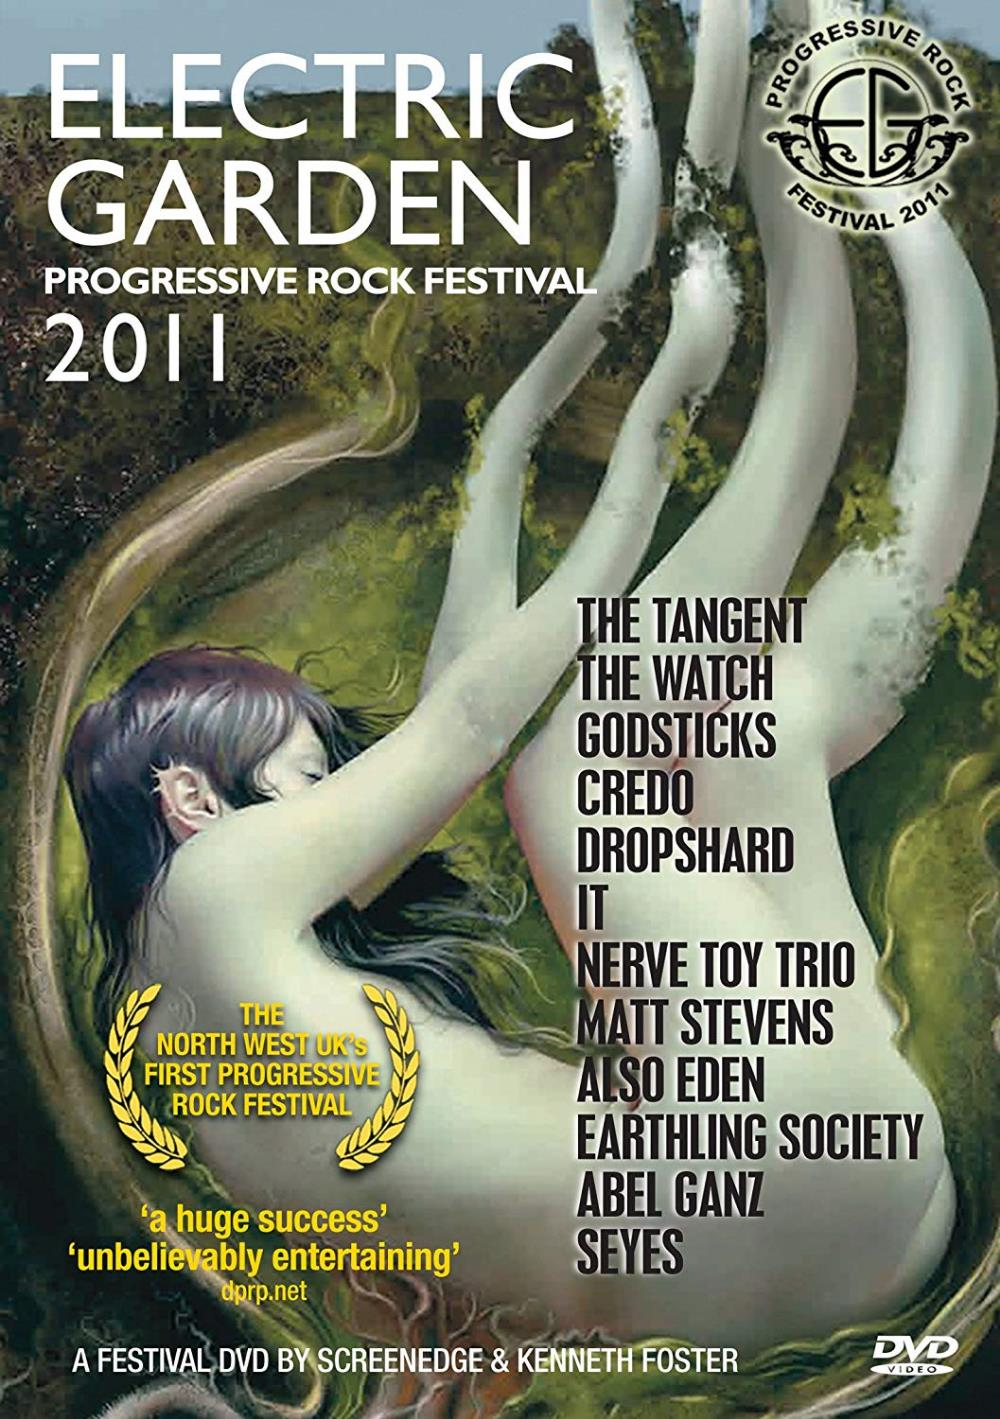 Various Artists (Concept albums & Themed compilations) Electric Garden Progressive Rock Festival 2011 album cover